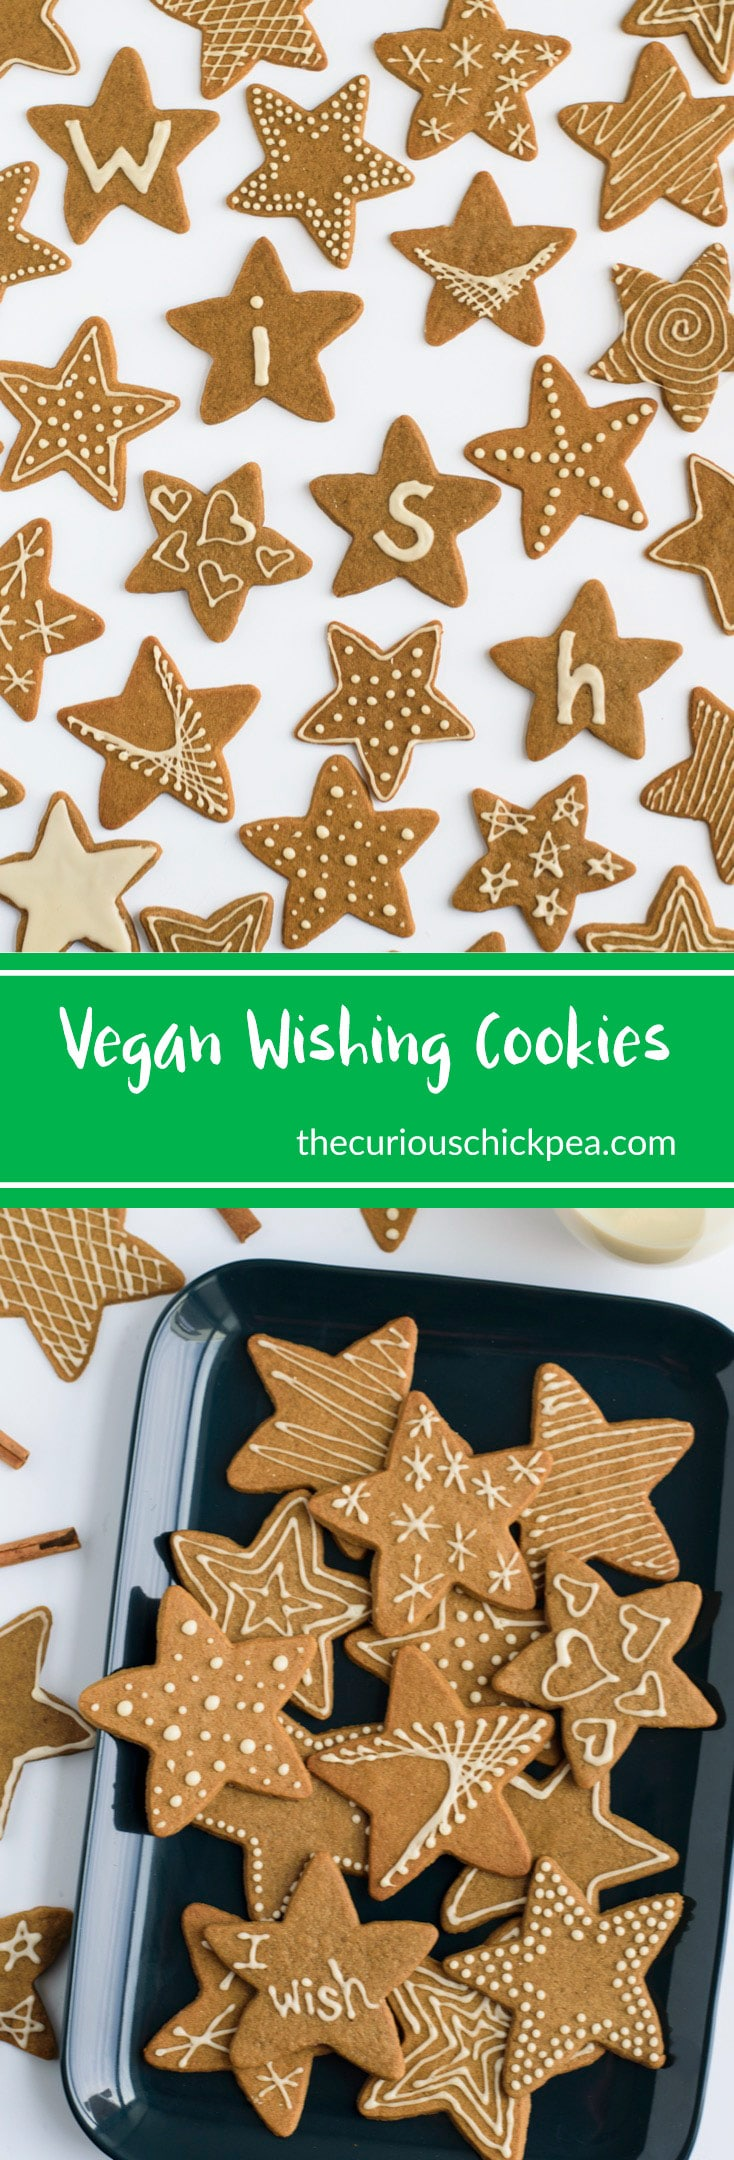 Vegan Wishing Cookie | Swedish vegan wishing cookies are light molasses cookies, spiced with cinnamon, ginger, and nutmeg. Break the cookie into 3 pieces your wish may come true! | thecuriouschickpea.com #vegan #cookies #dessert